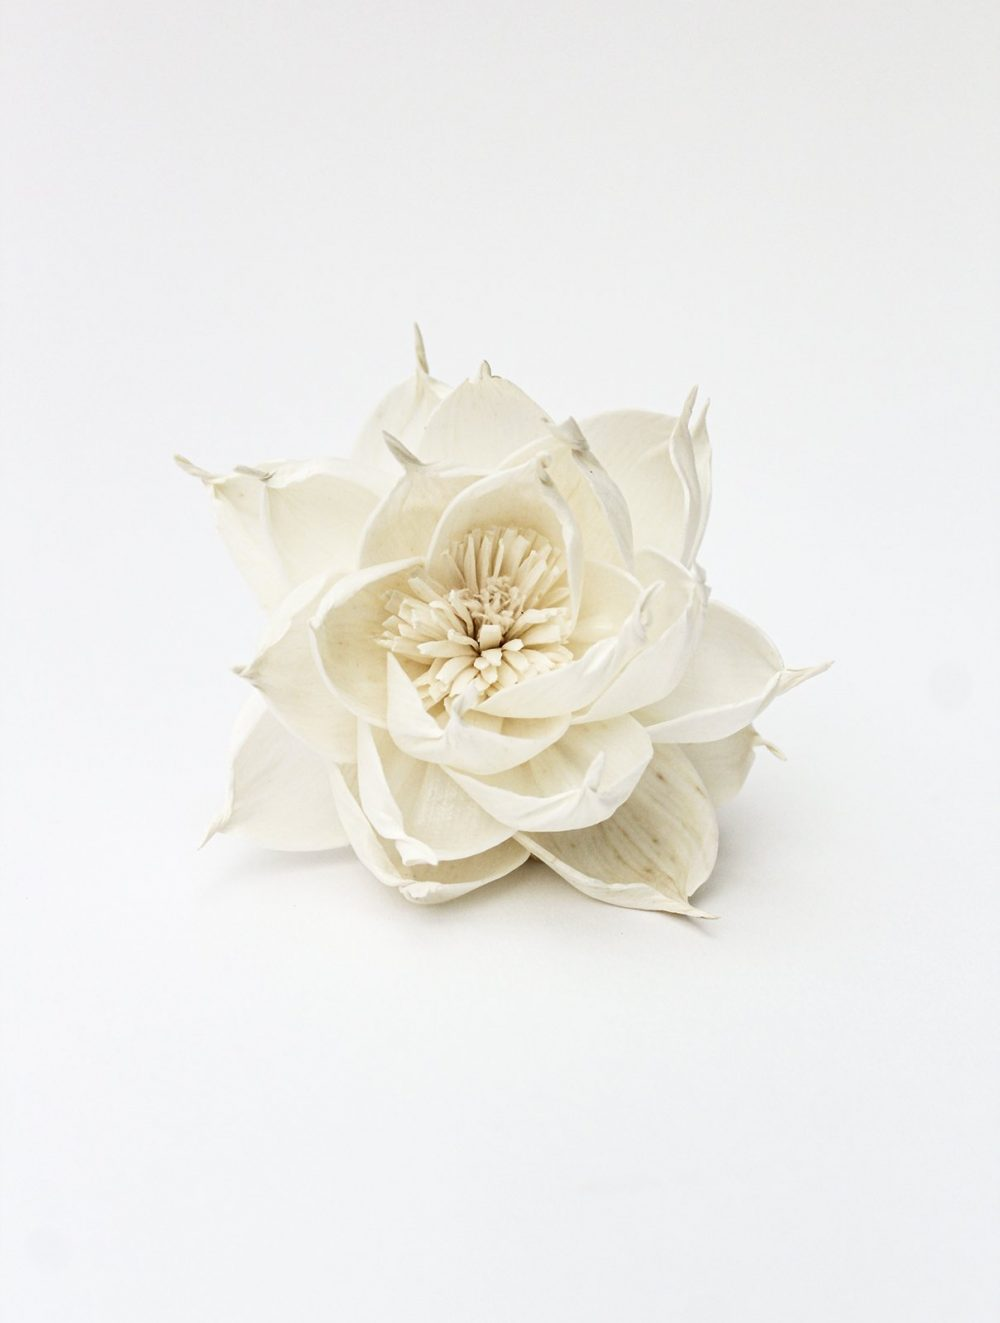 Fragrance Diffuser Flower from Vintage and Bespoke